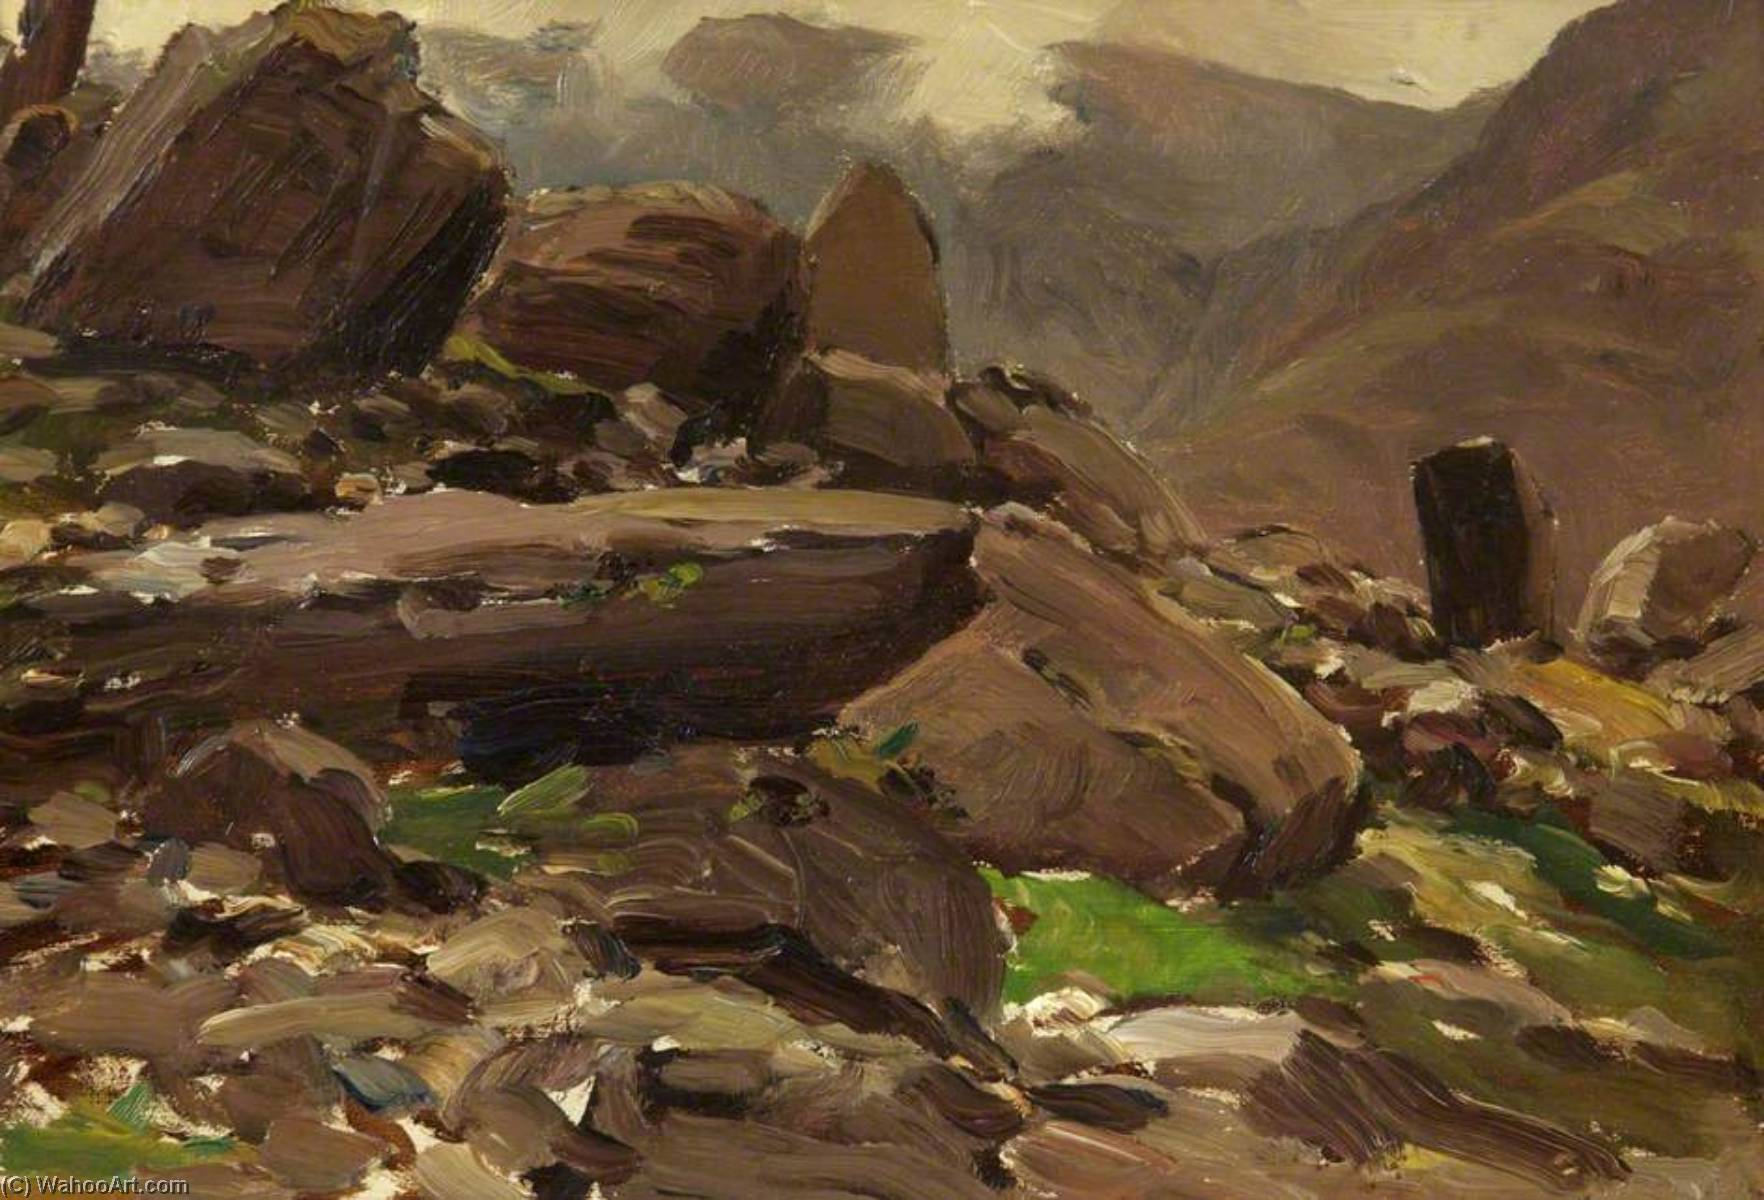 Wikioo.org - The Encyclopedia of Fine Arts - Painting, Artwork by Francis Abel William Taylor Armstrong - A Mountainous Lake Scene with Rocks in the Foreground